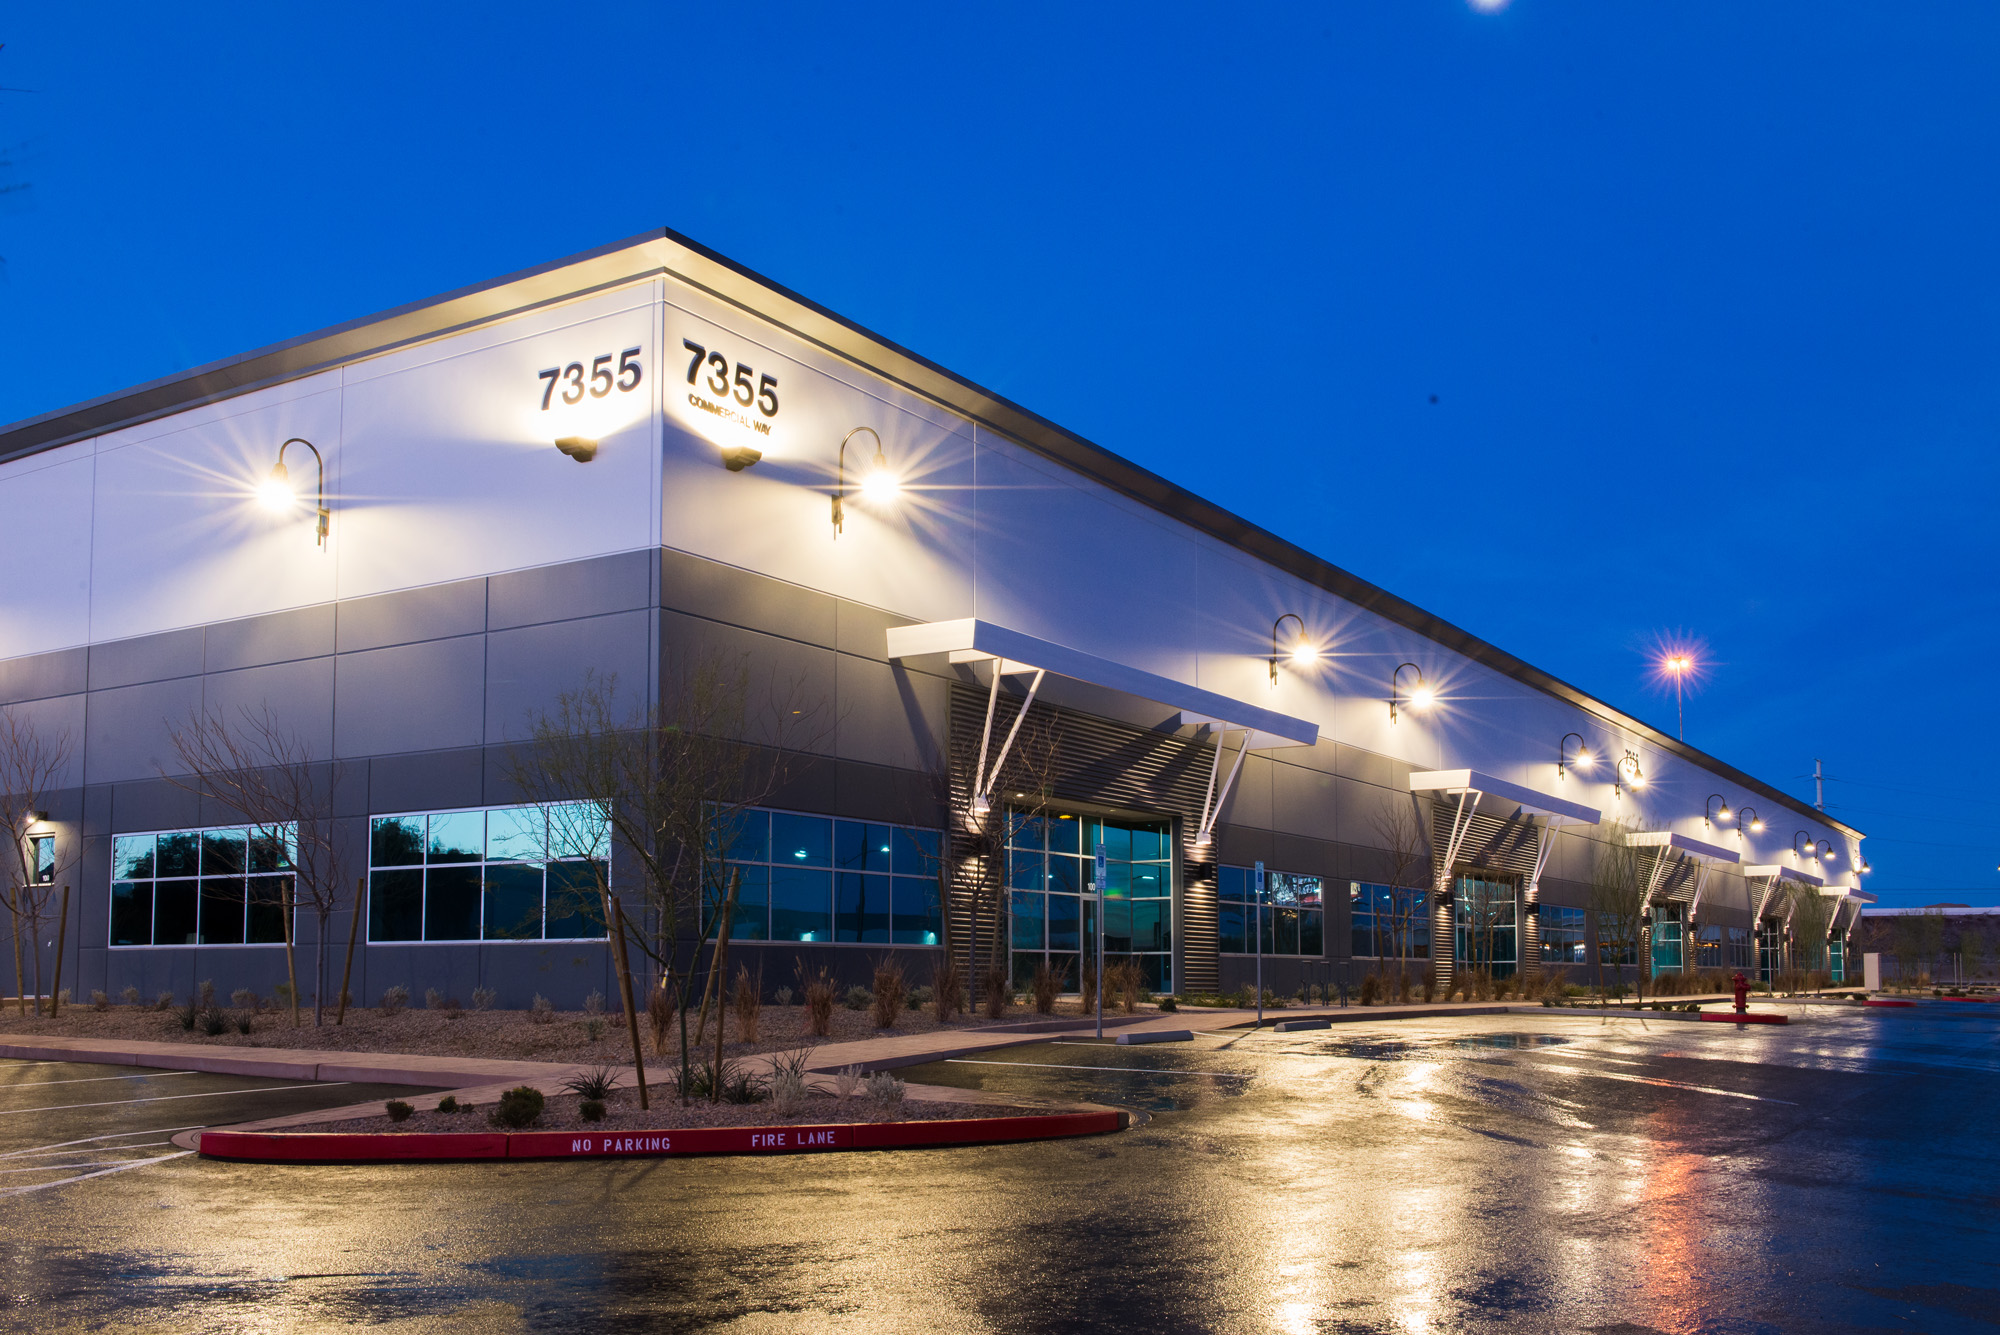 Exterior photo, length of building 7355 at blue hour, Henderson Commerce Center - Commercial Way